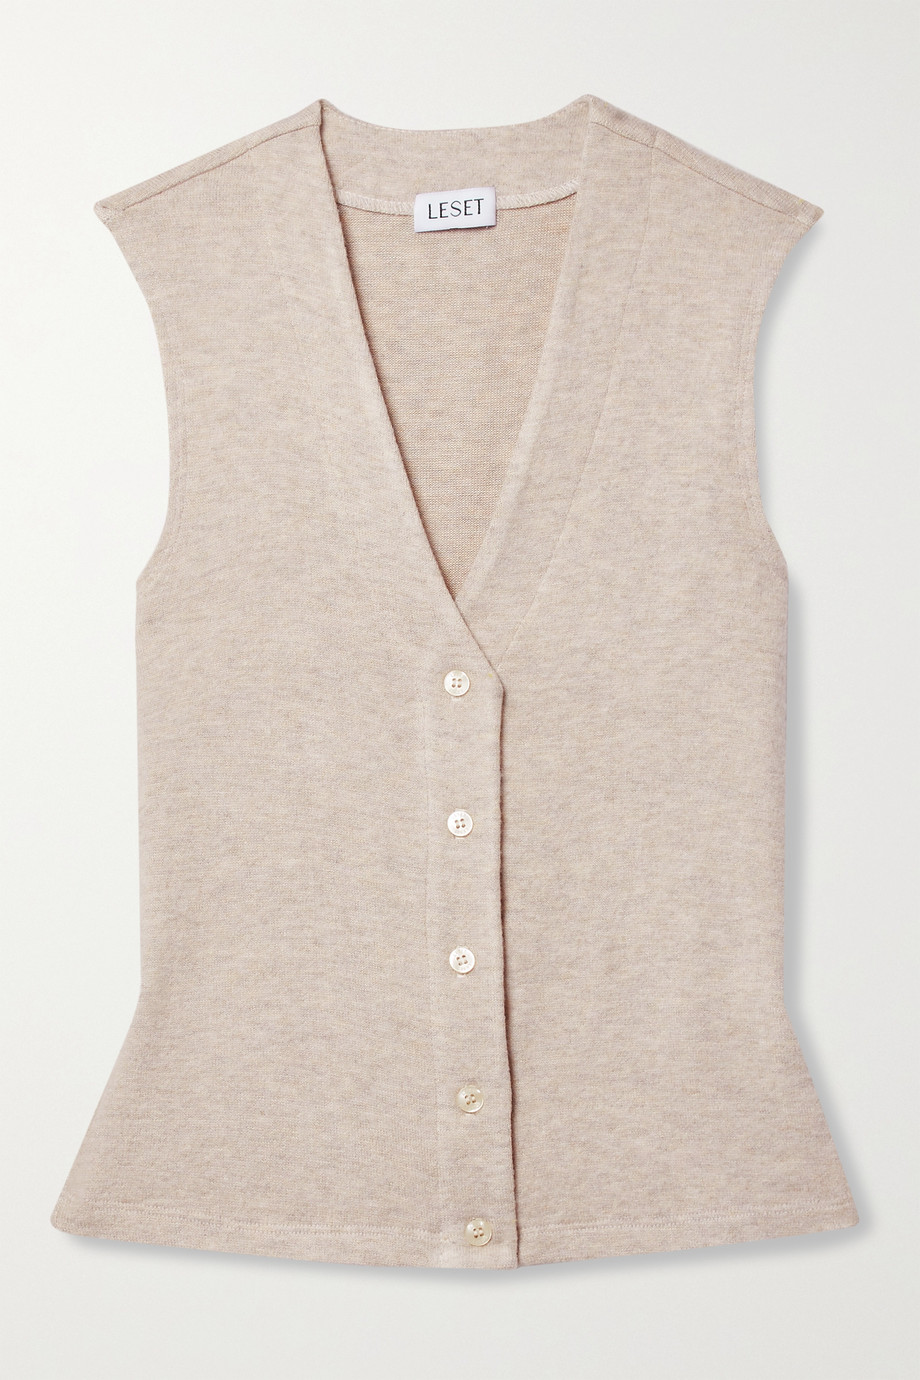 LESET Lori brushed stretch-jersey vest